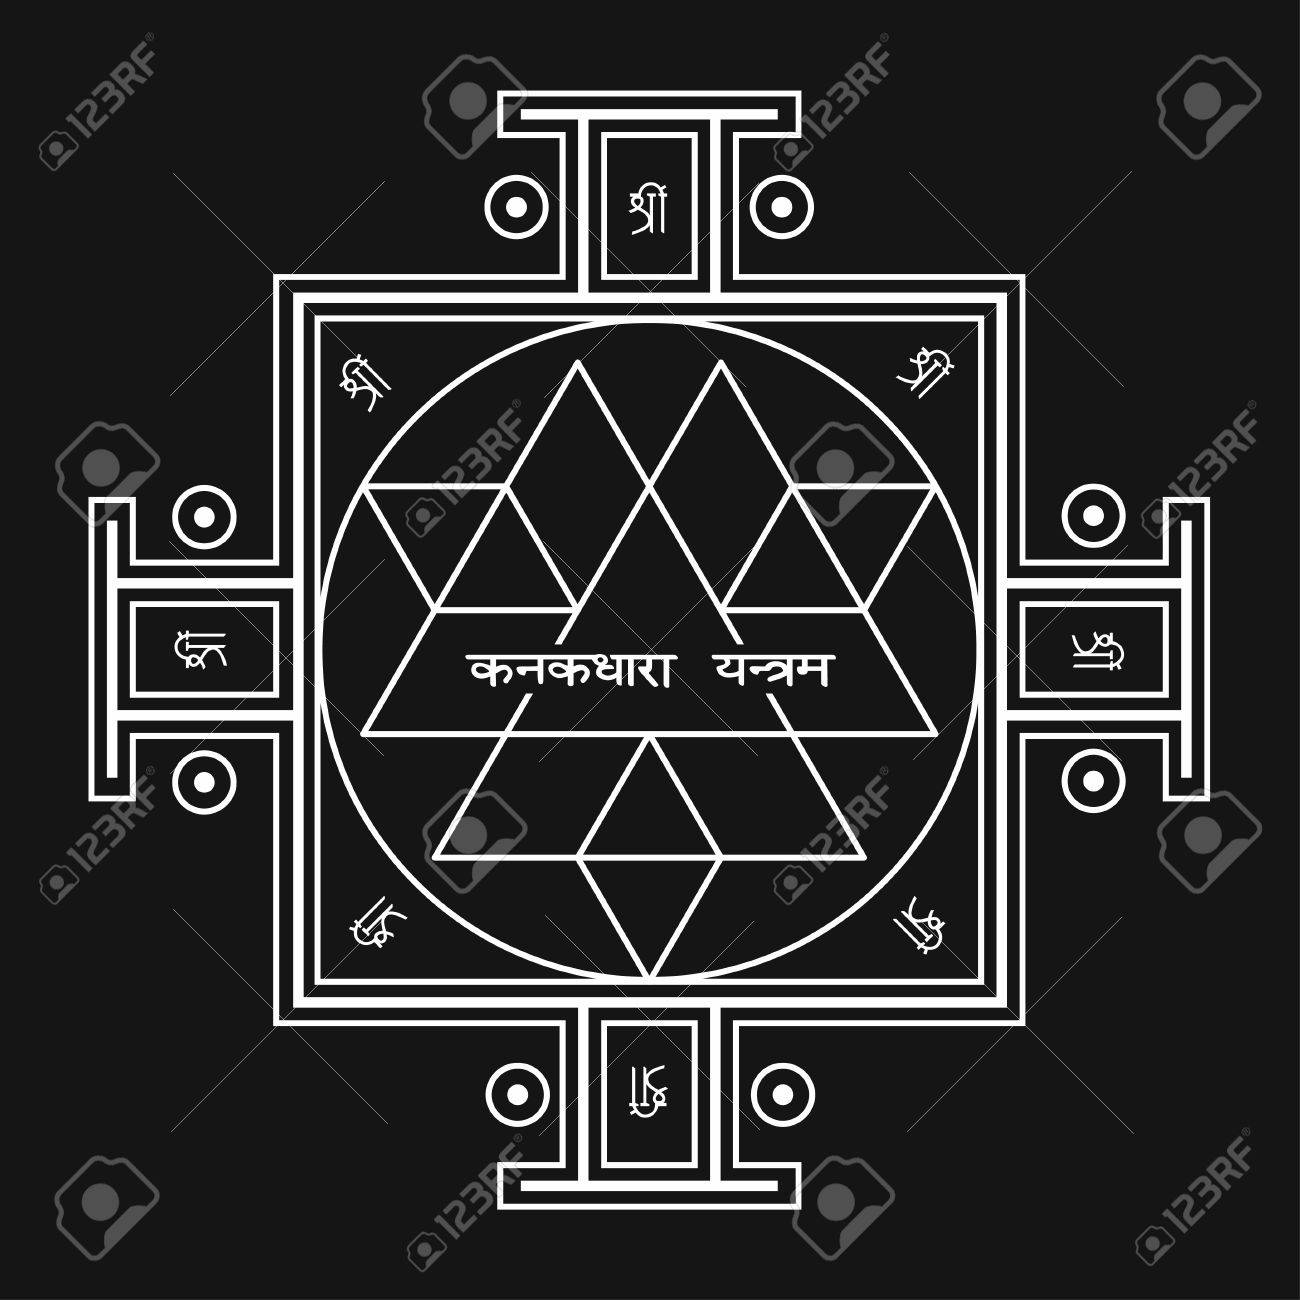 Sri Yantra Is The Symbol Of Hindu Tantra Formed By Interlocking